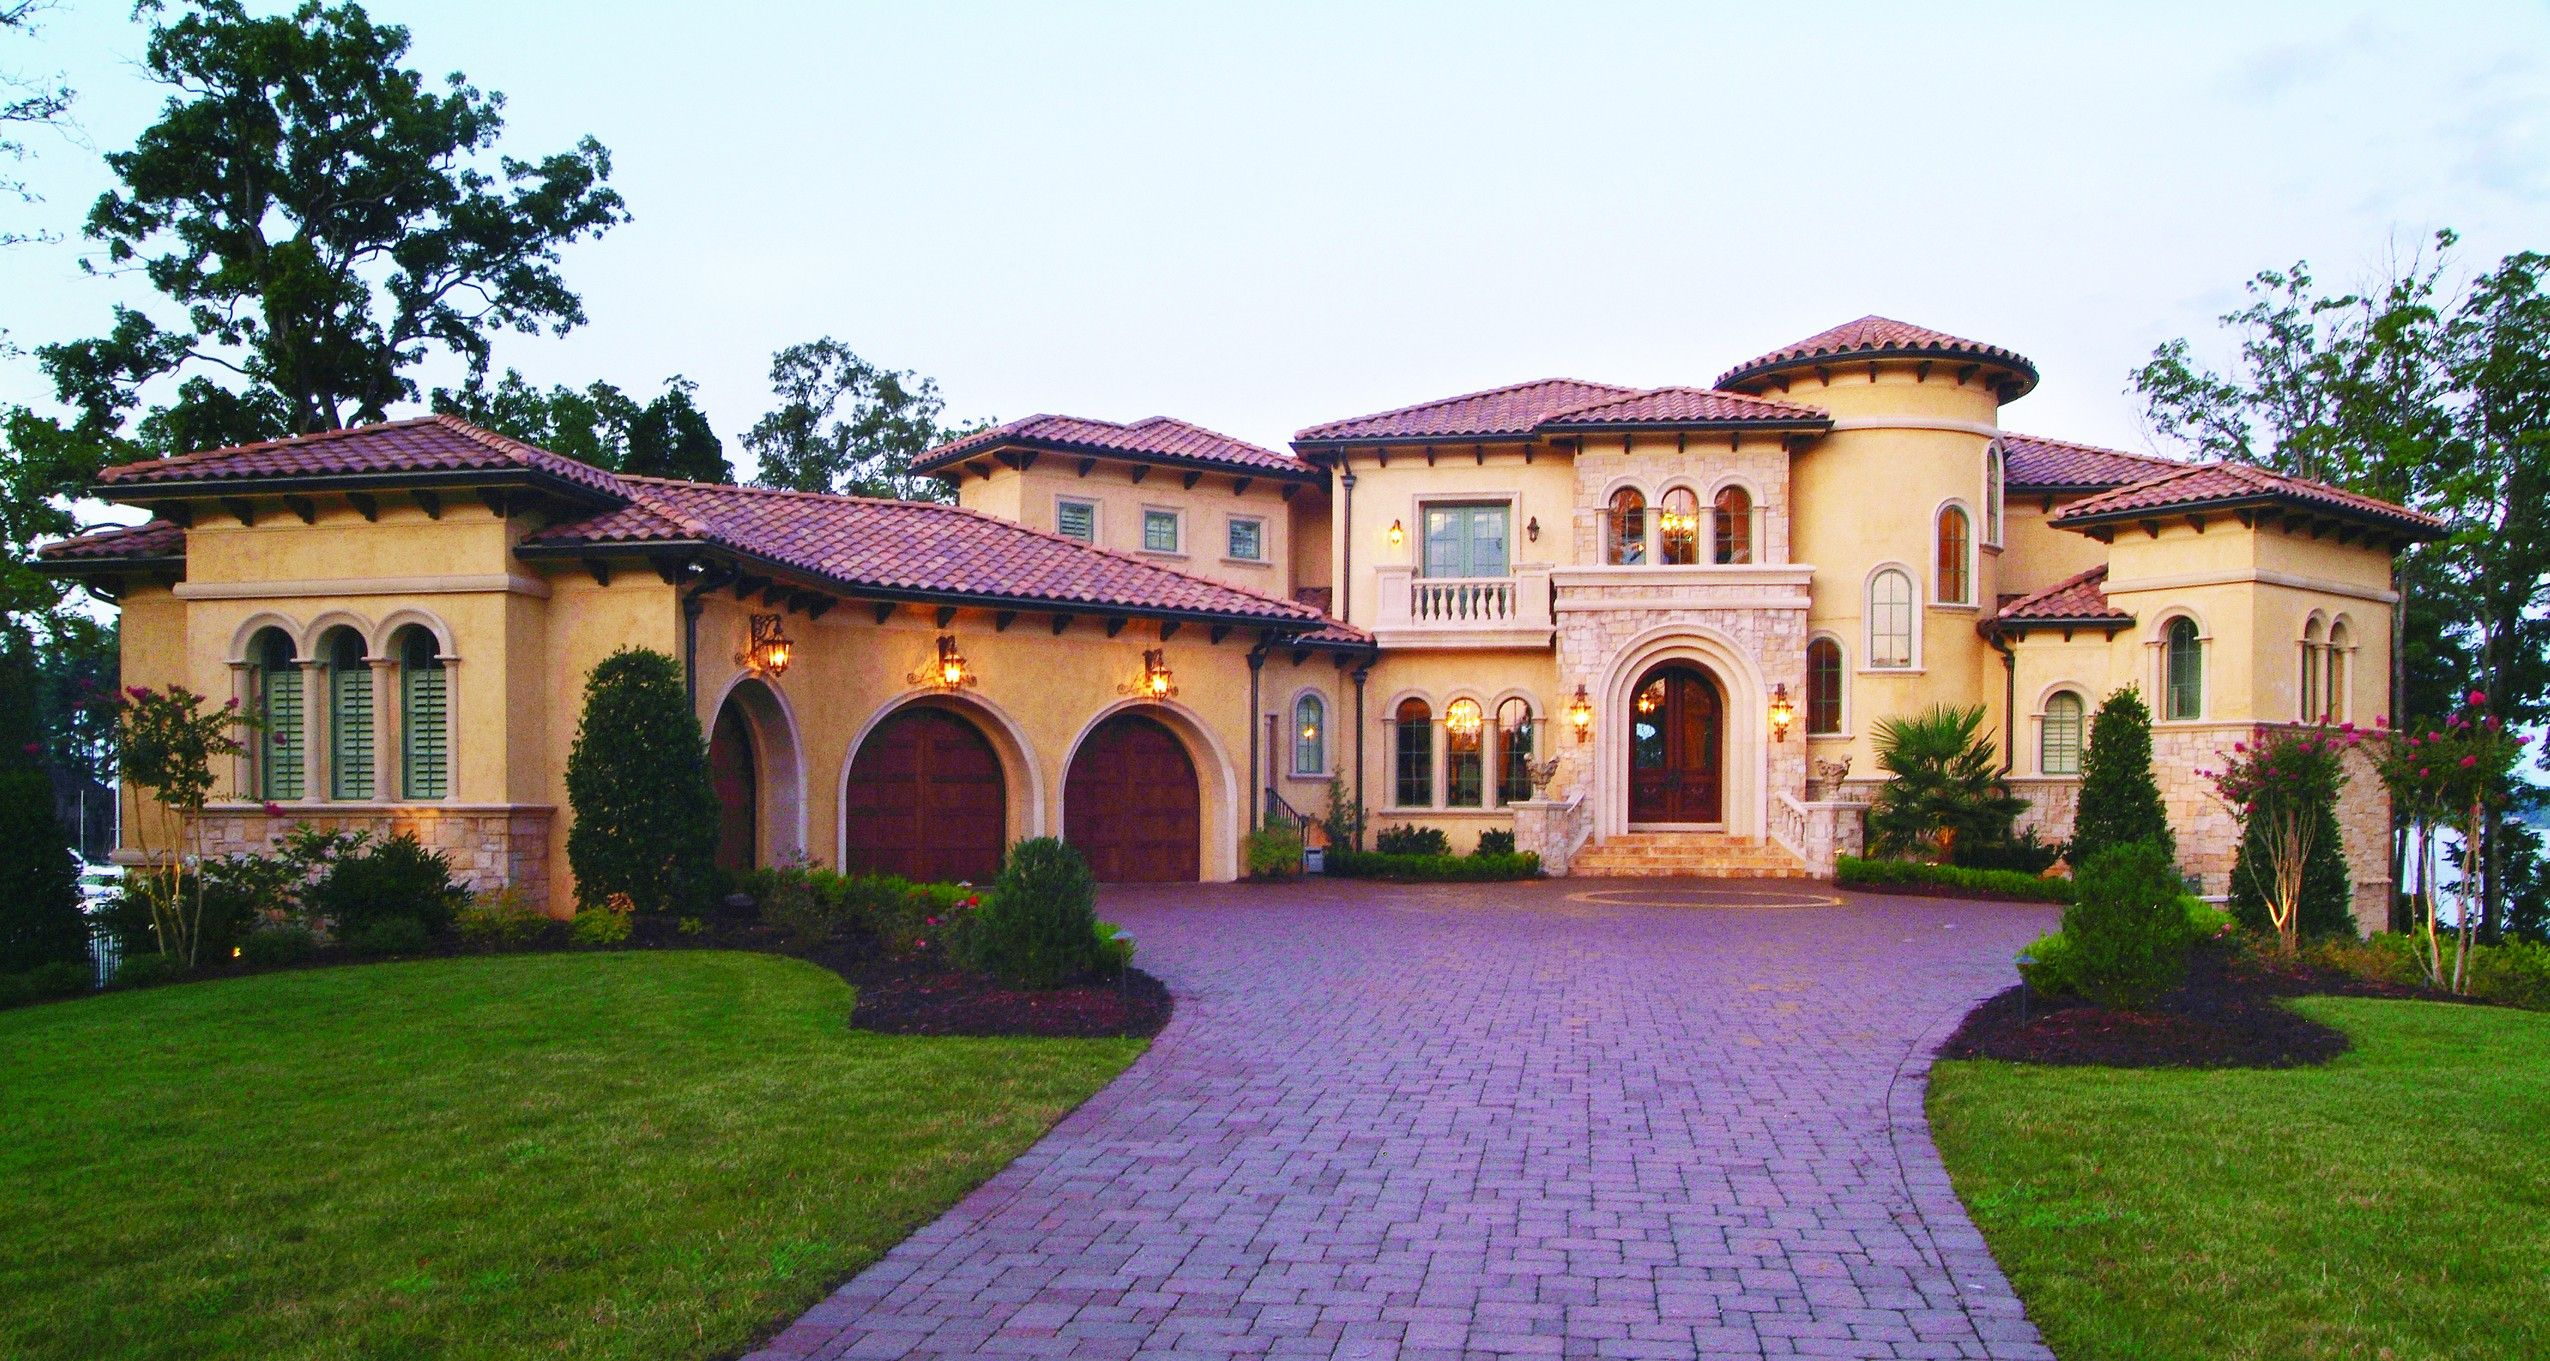 Luxury Home Plans - Luxury Home Designs from HomePlans.com ...